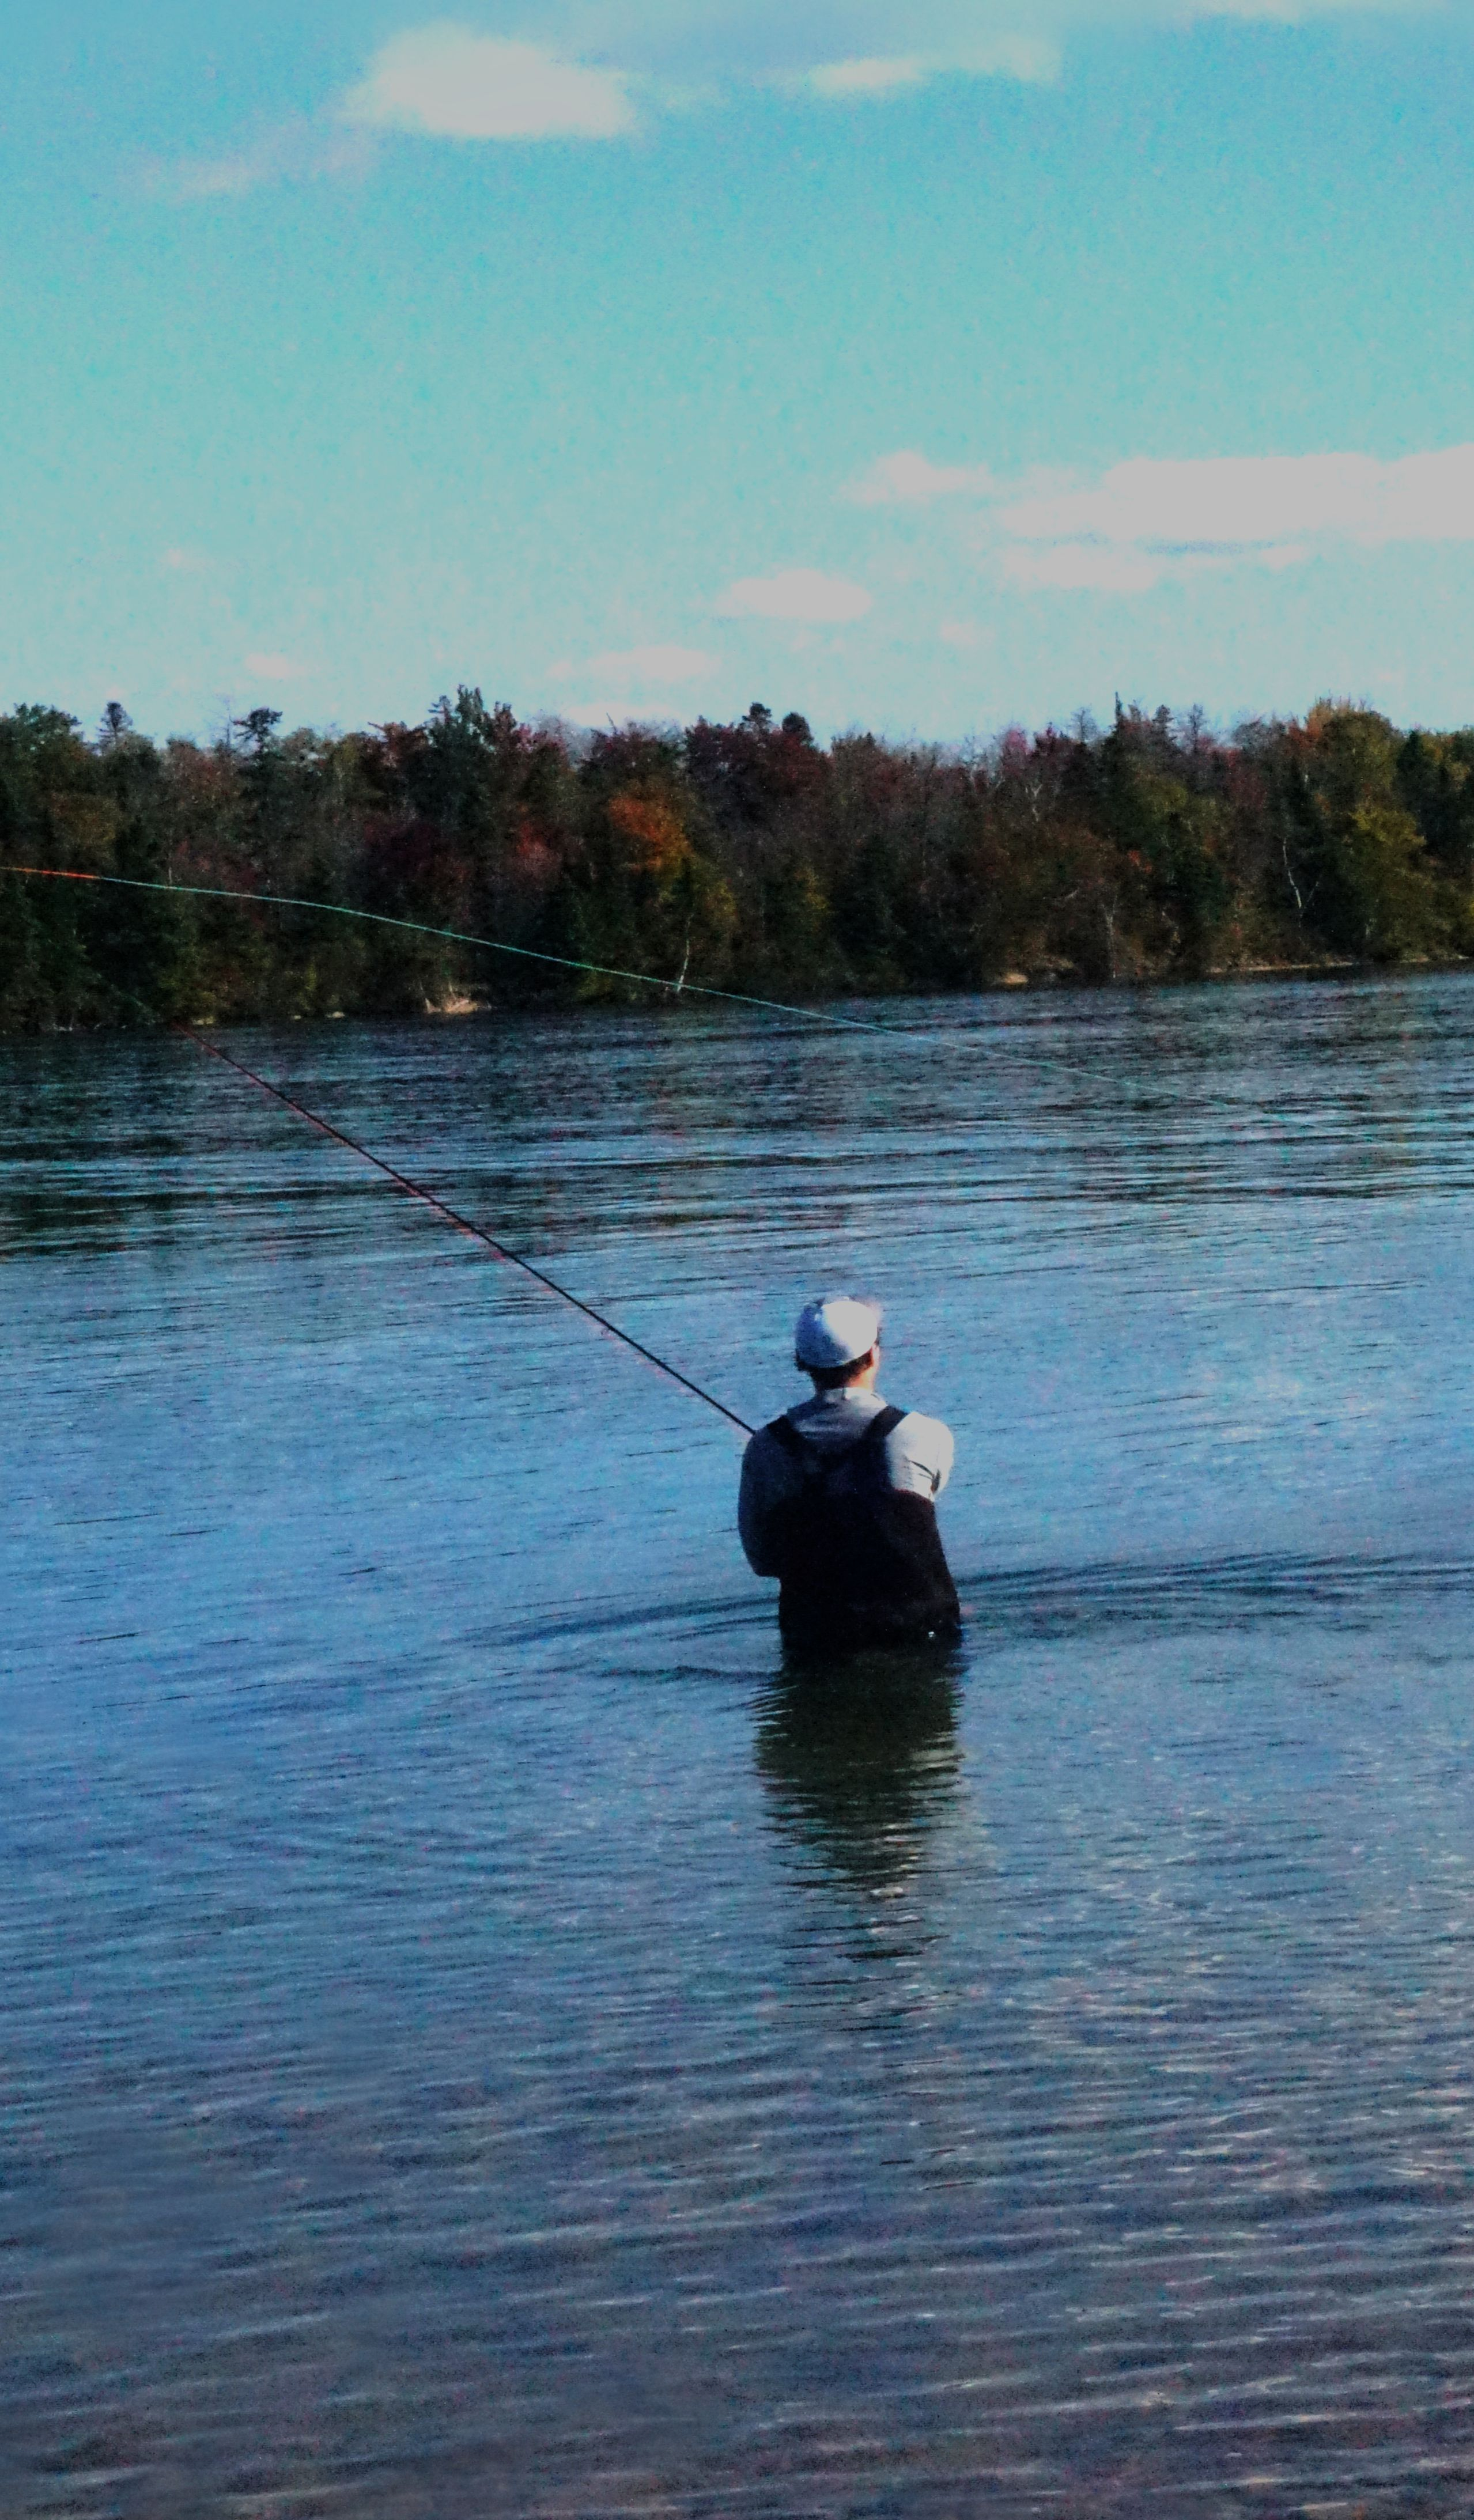 If You Aren T Into Fishing With A Bobber Or You Re Just Looking For A New Challenge Fly Fishing Might Be Right Up Your Alley Fishing Basics Fly Fishing Fun